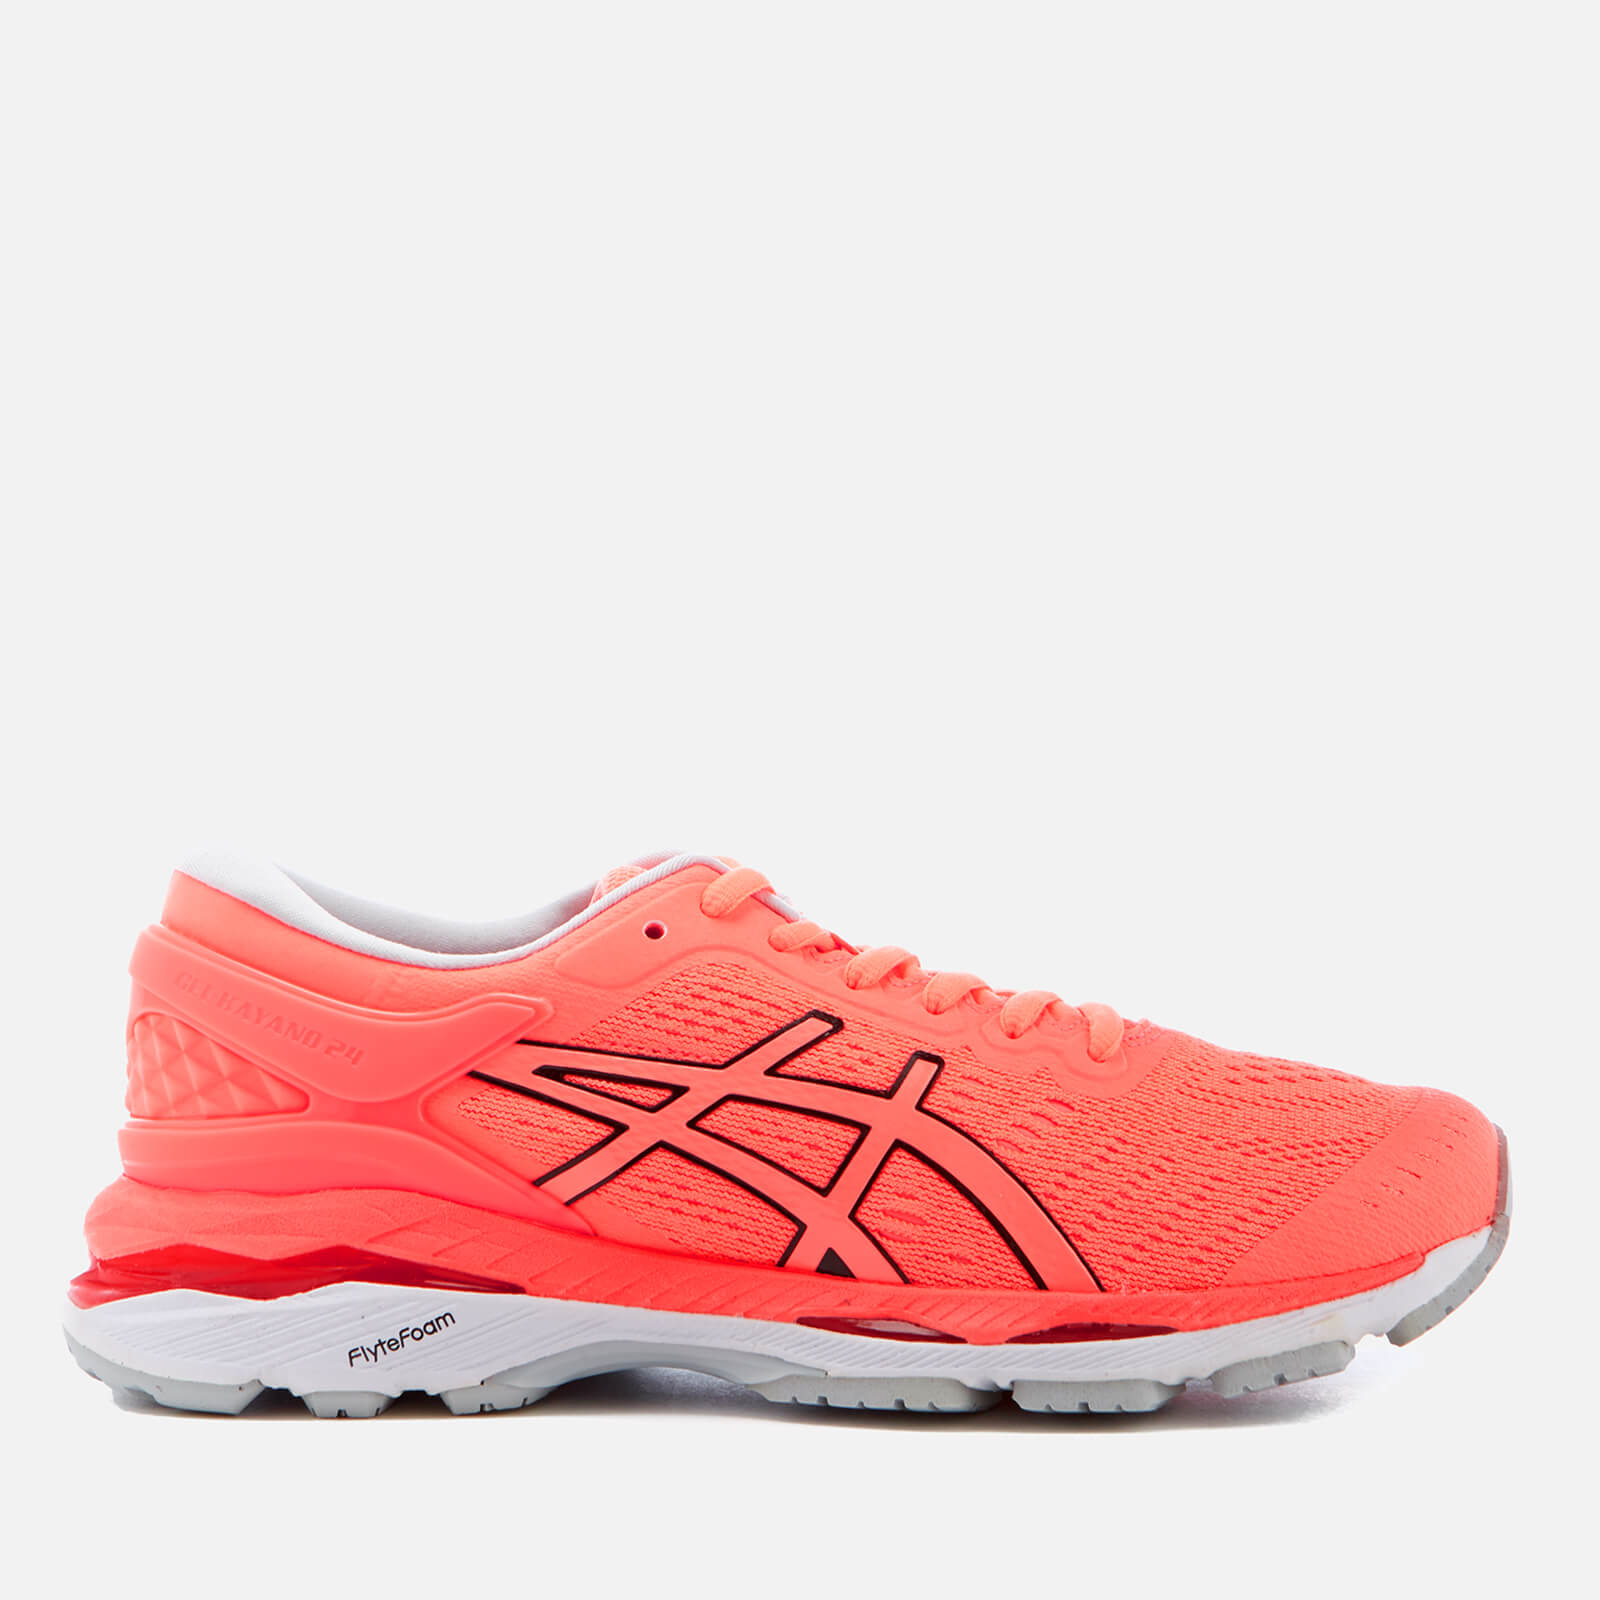 972ad9585b Asics Running Women's Gel Kayano 24 Trainers - Flash Coral